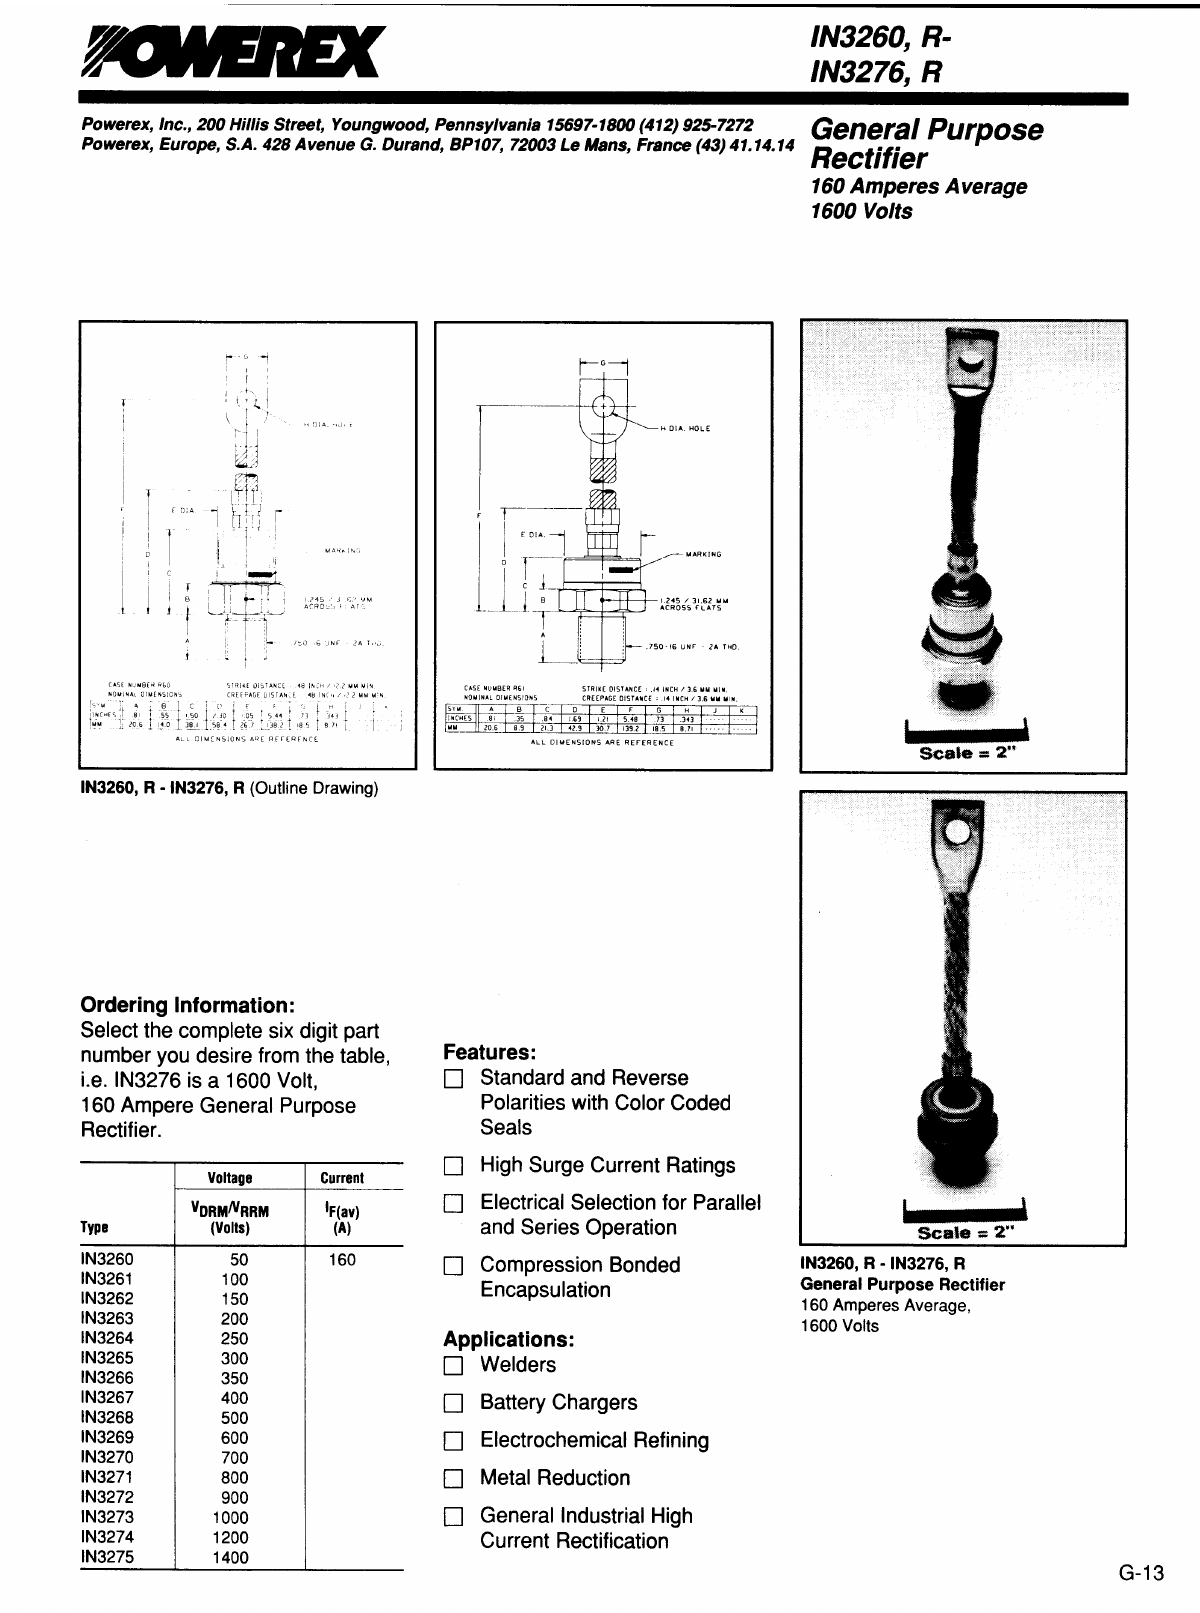 R-IN3272 datasheet